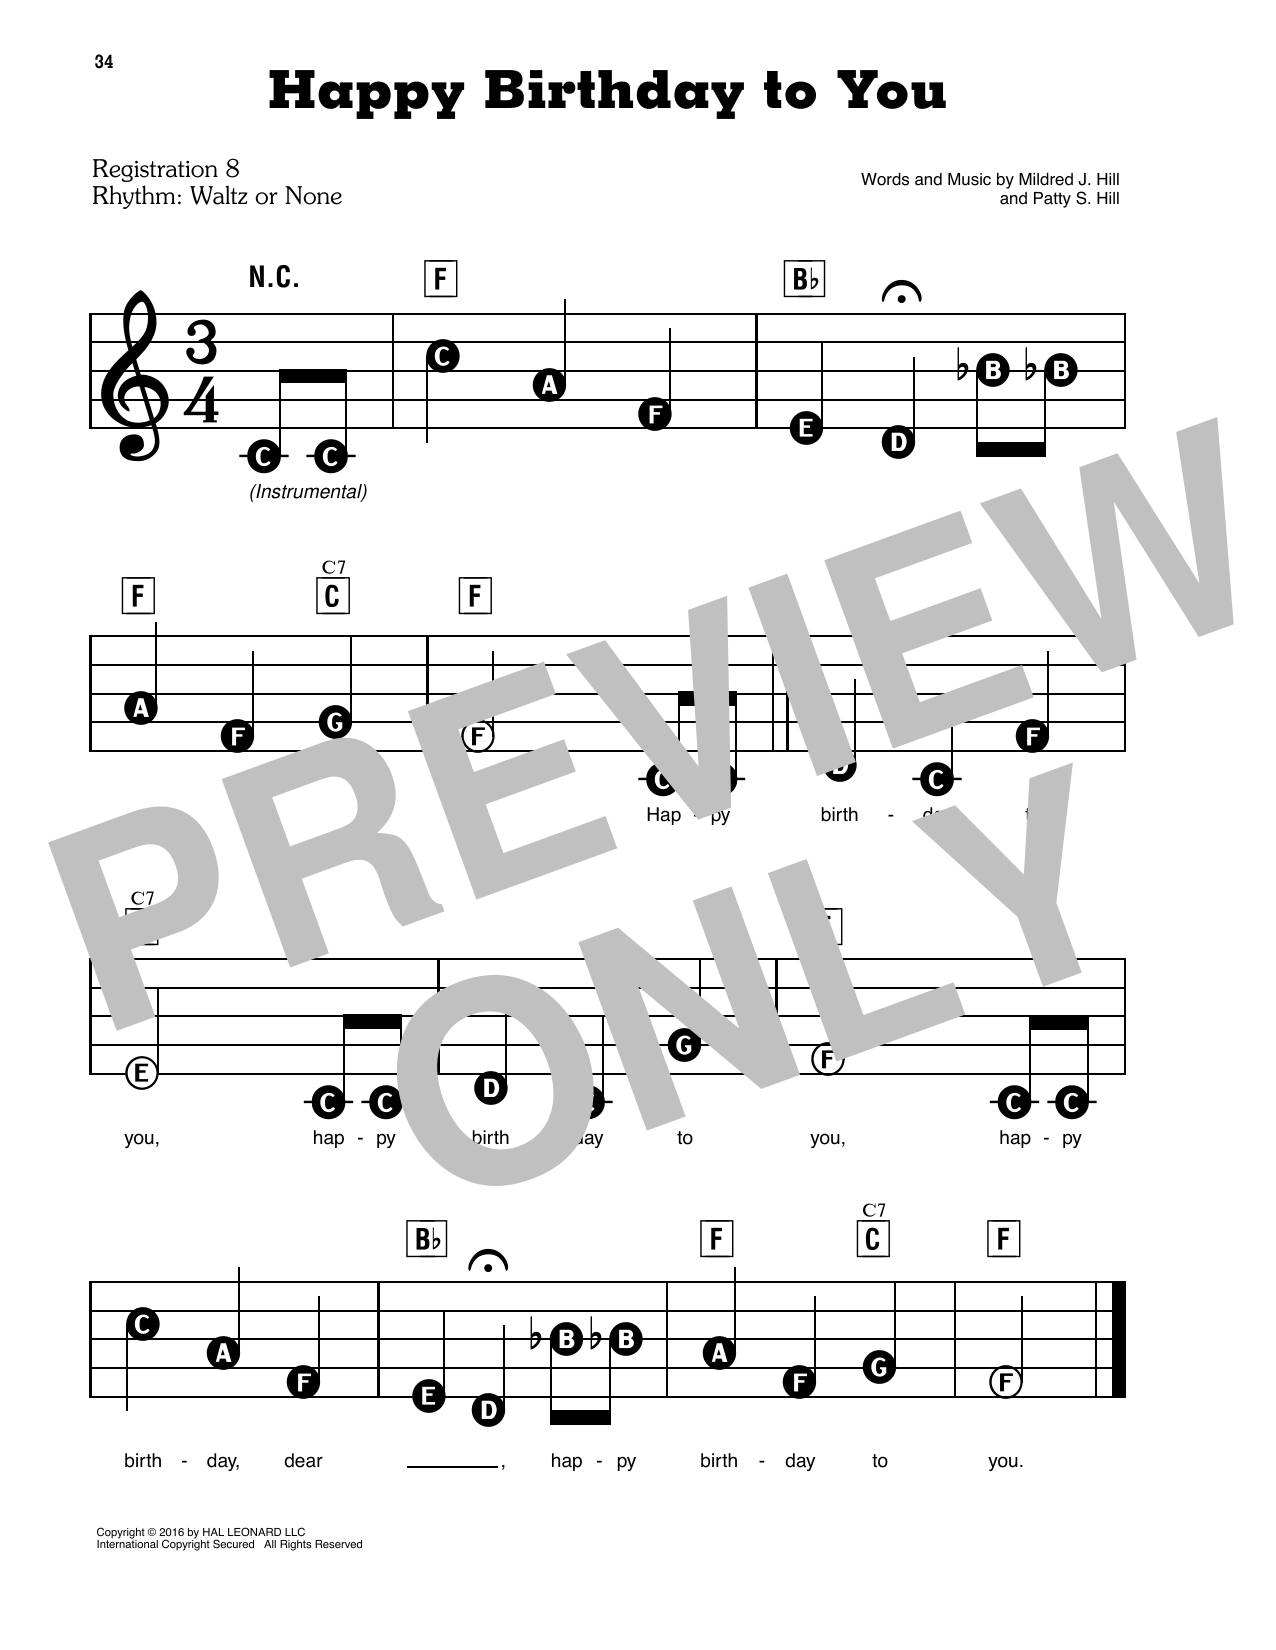 Mildred J. Hill & Patty S. Hill Happy Birthday To You sheet music notes and chords. Download Printable PDF.